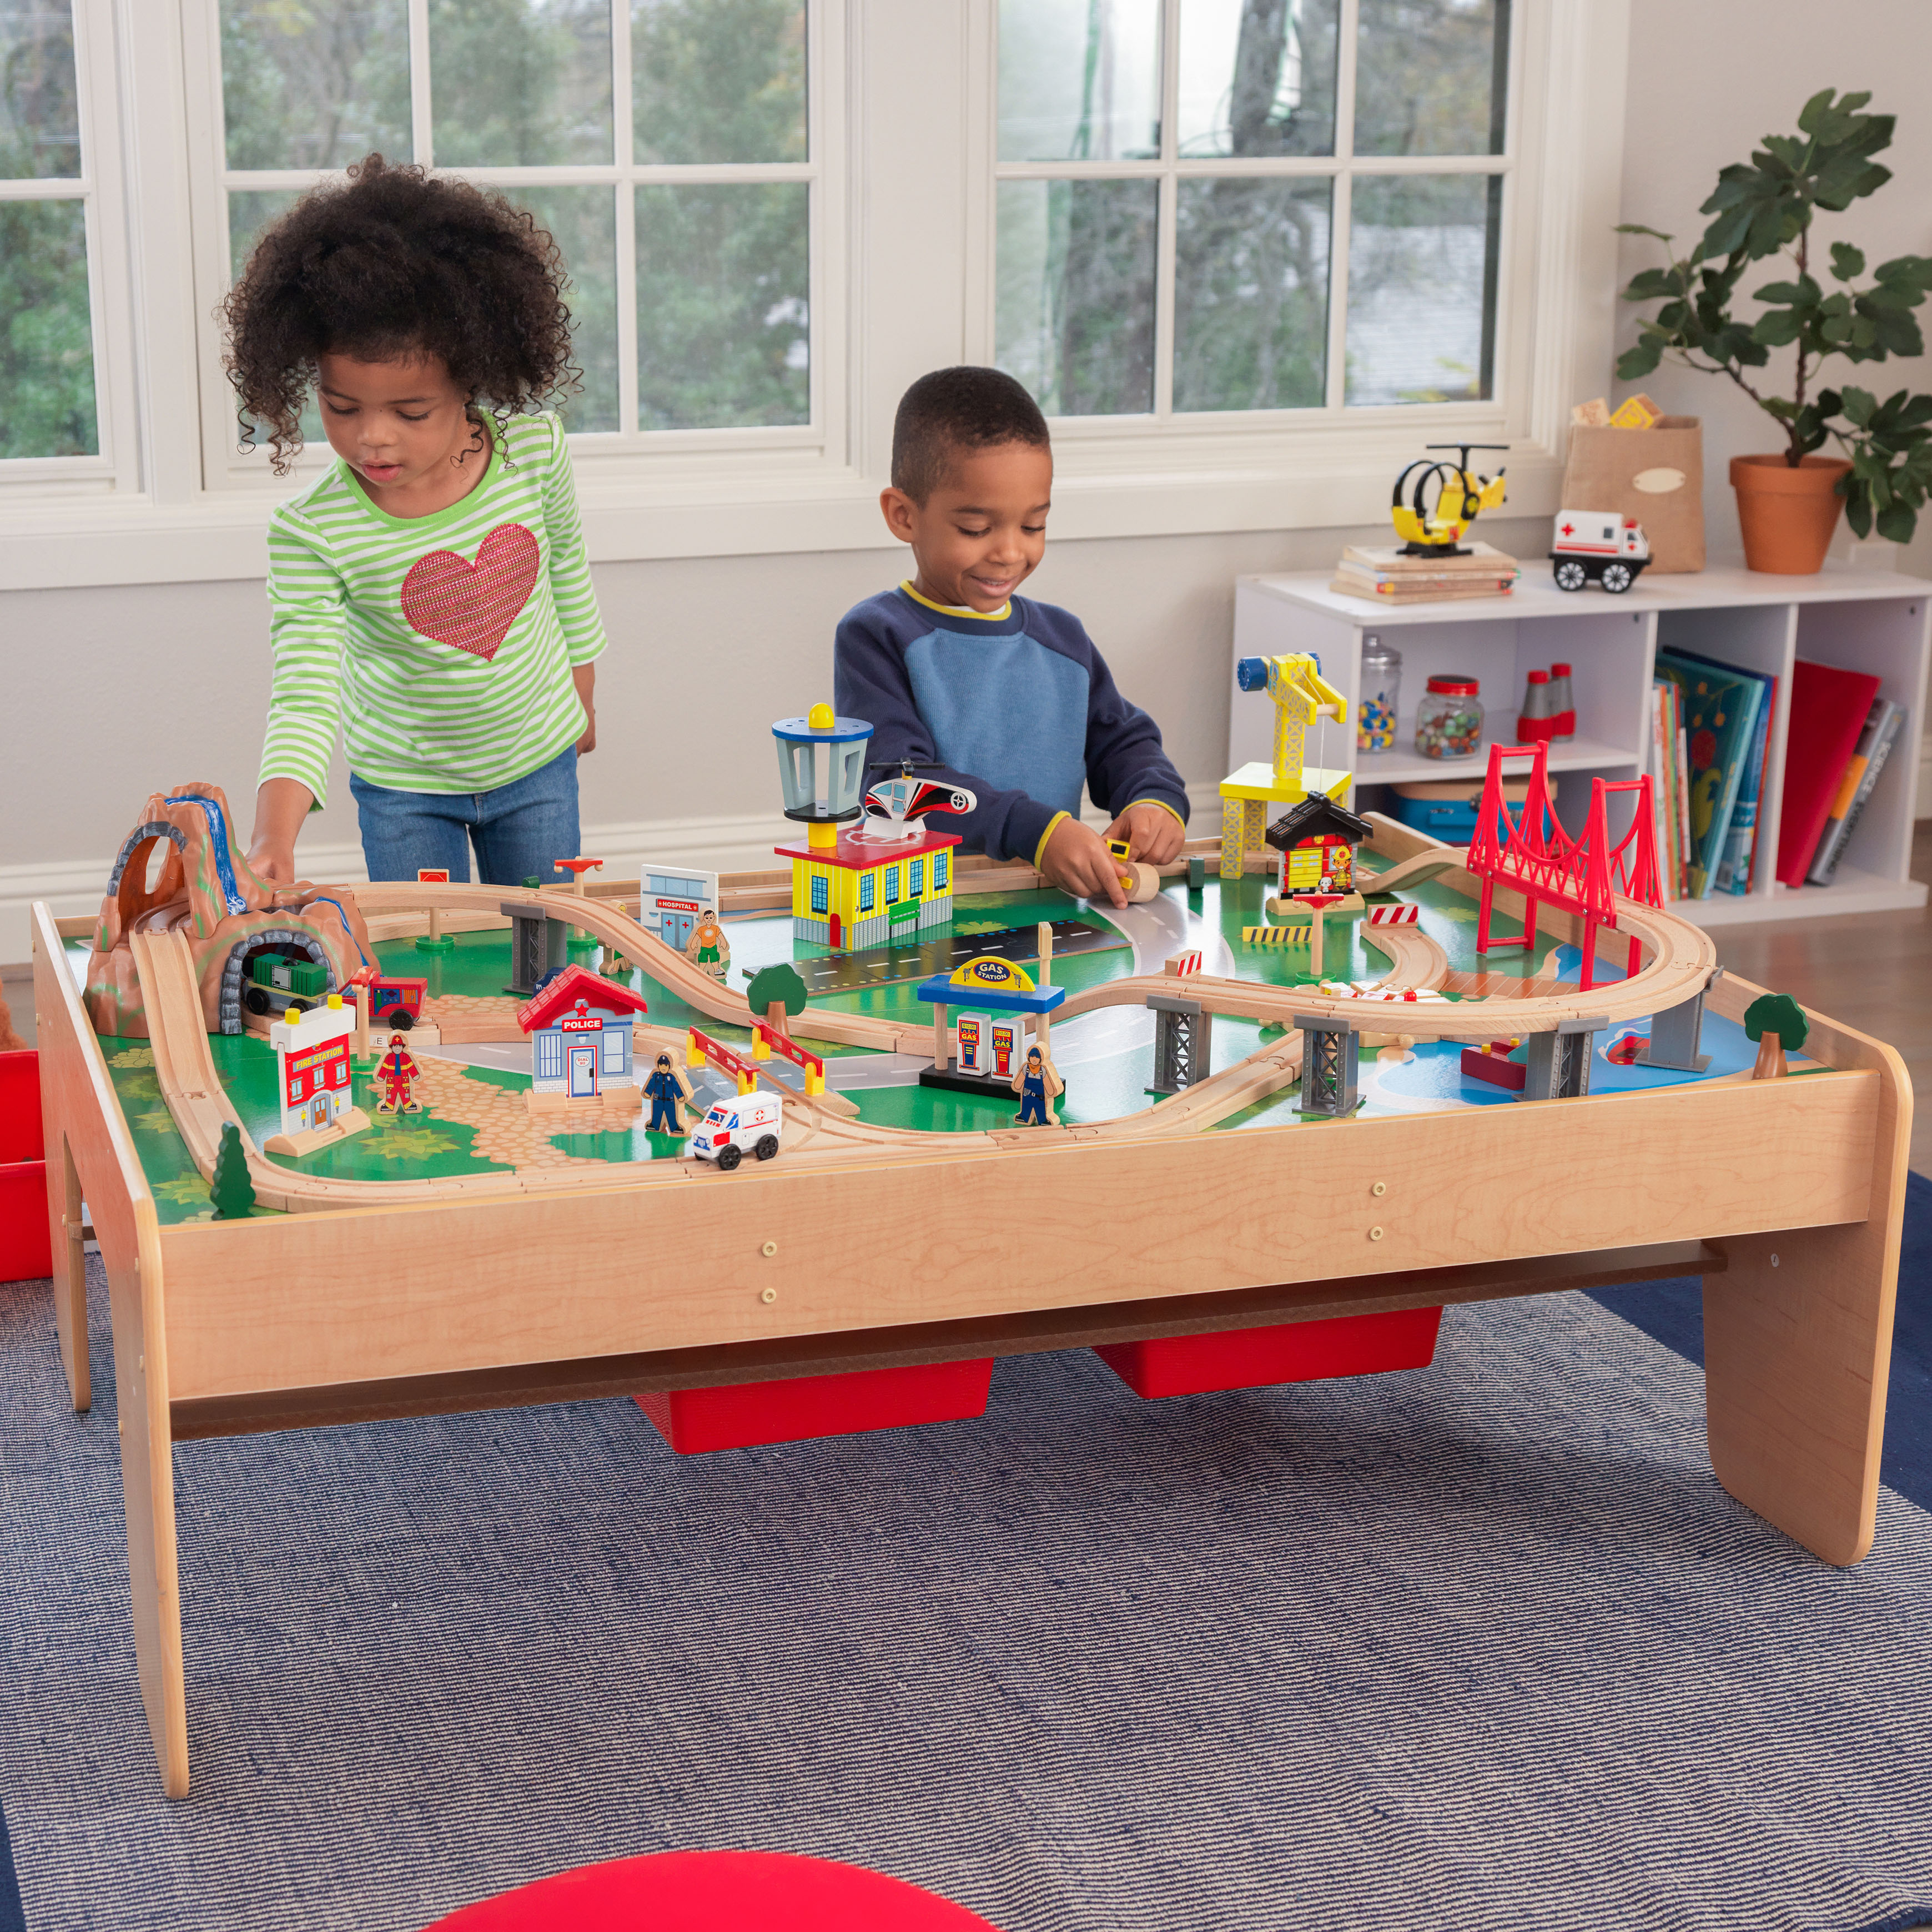 KidKraft Waterfall Mountain Train Set & Table with 120 accessories included by KidKraft